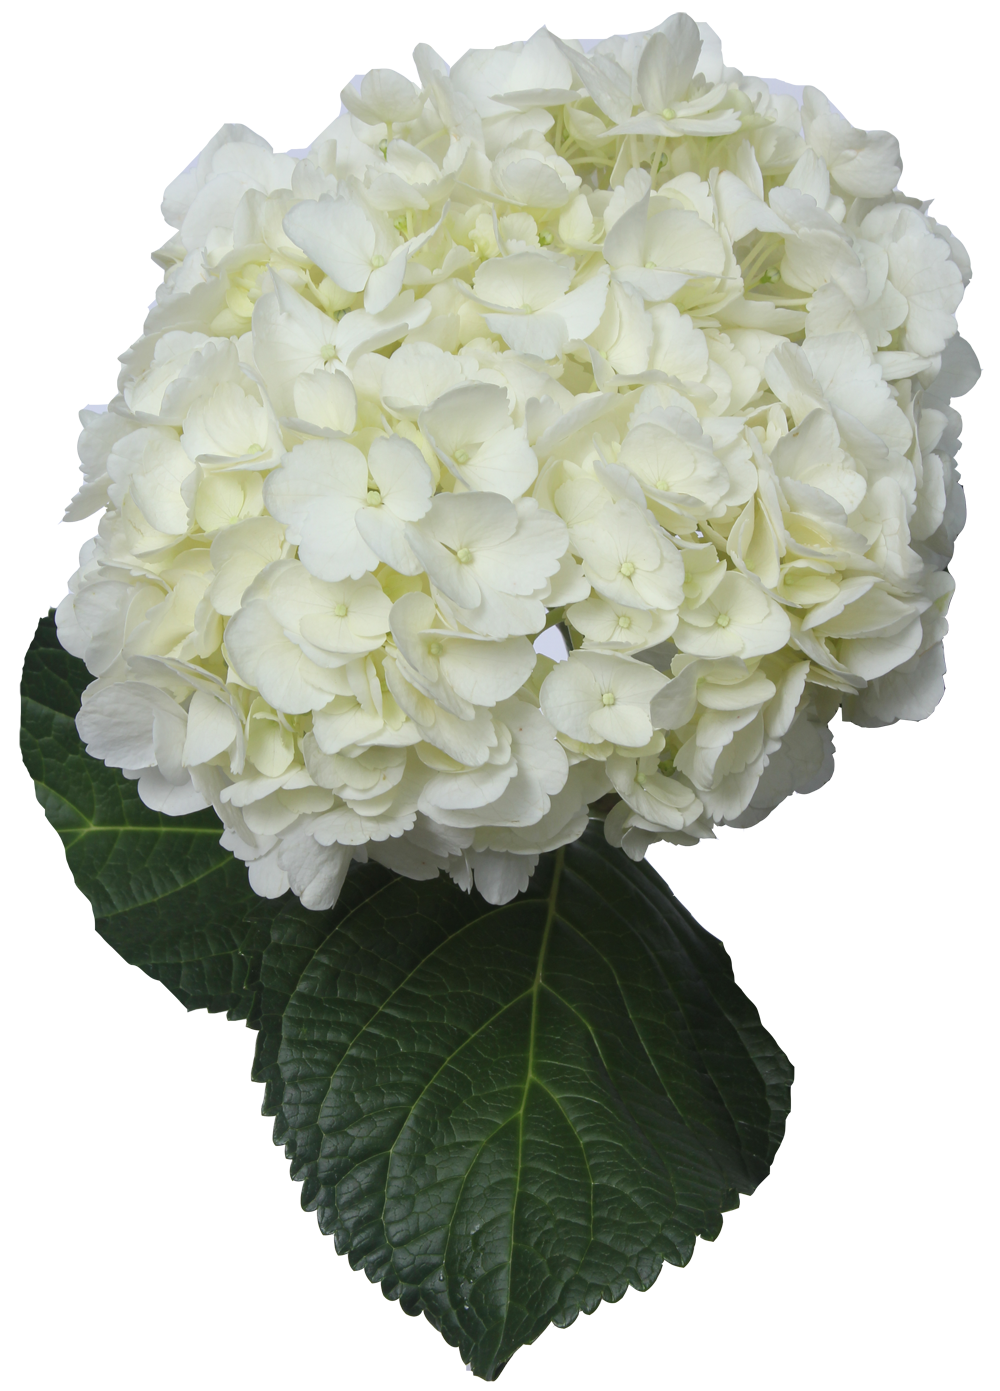 Hydrangea transparent white. Cut flowers green transprent